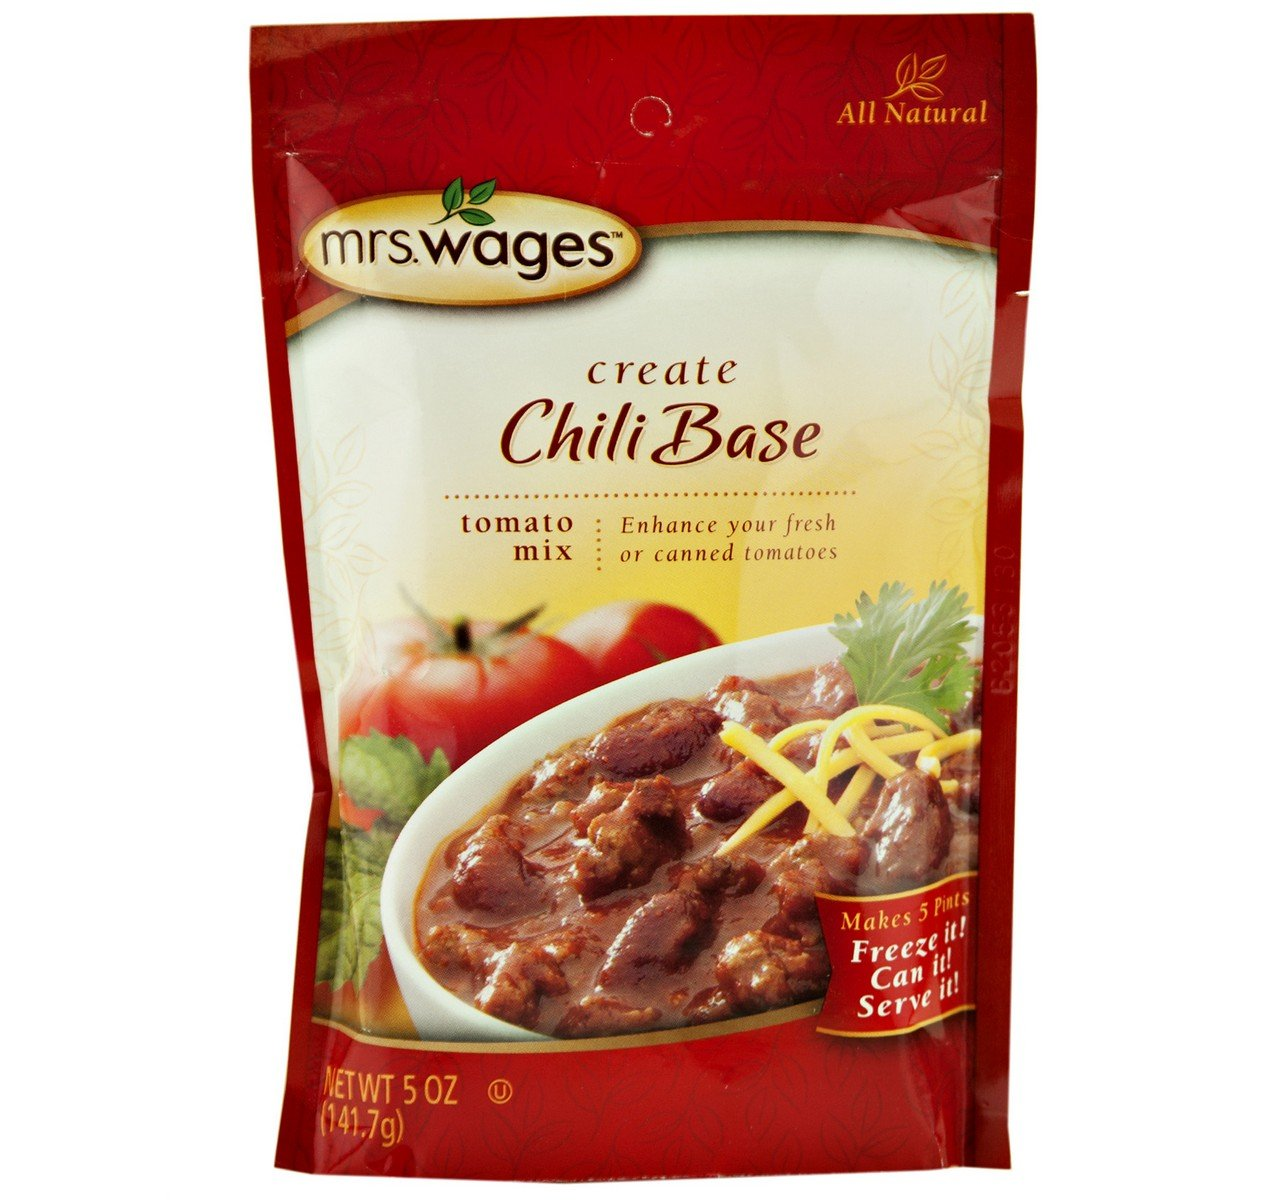 Mrs. Wages New color Chili Base Tomato Seasoning Mix 5 Pouch Oz. of New mail order Case